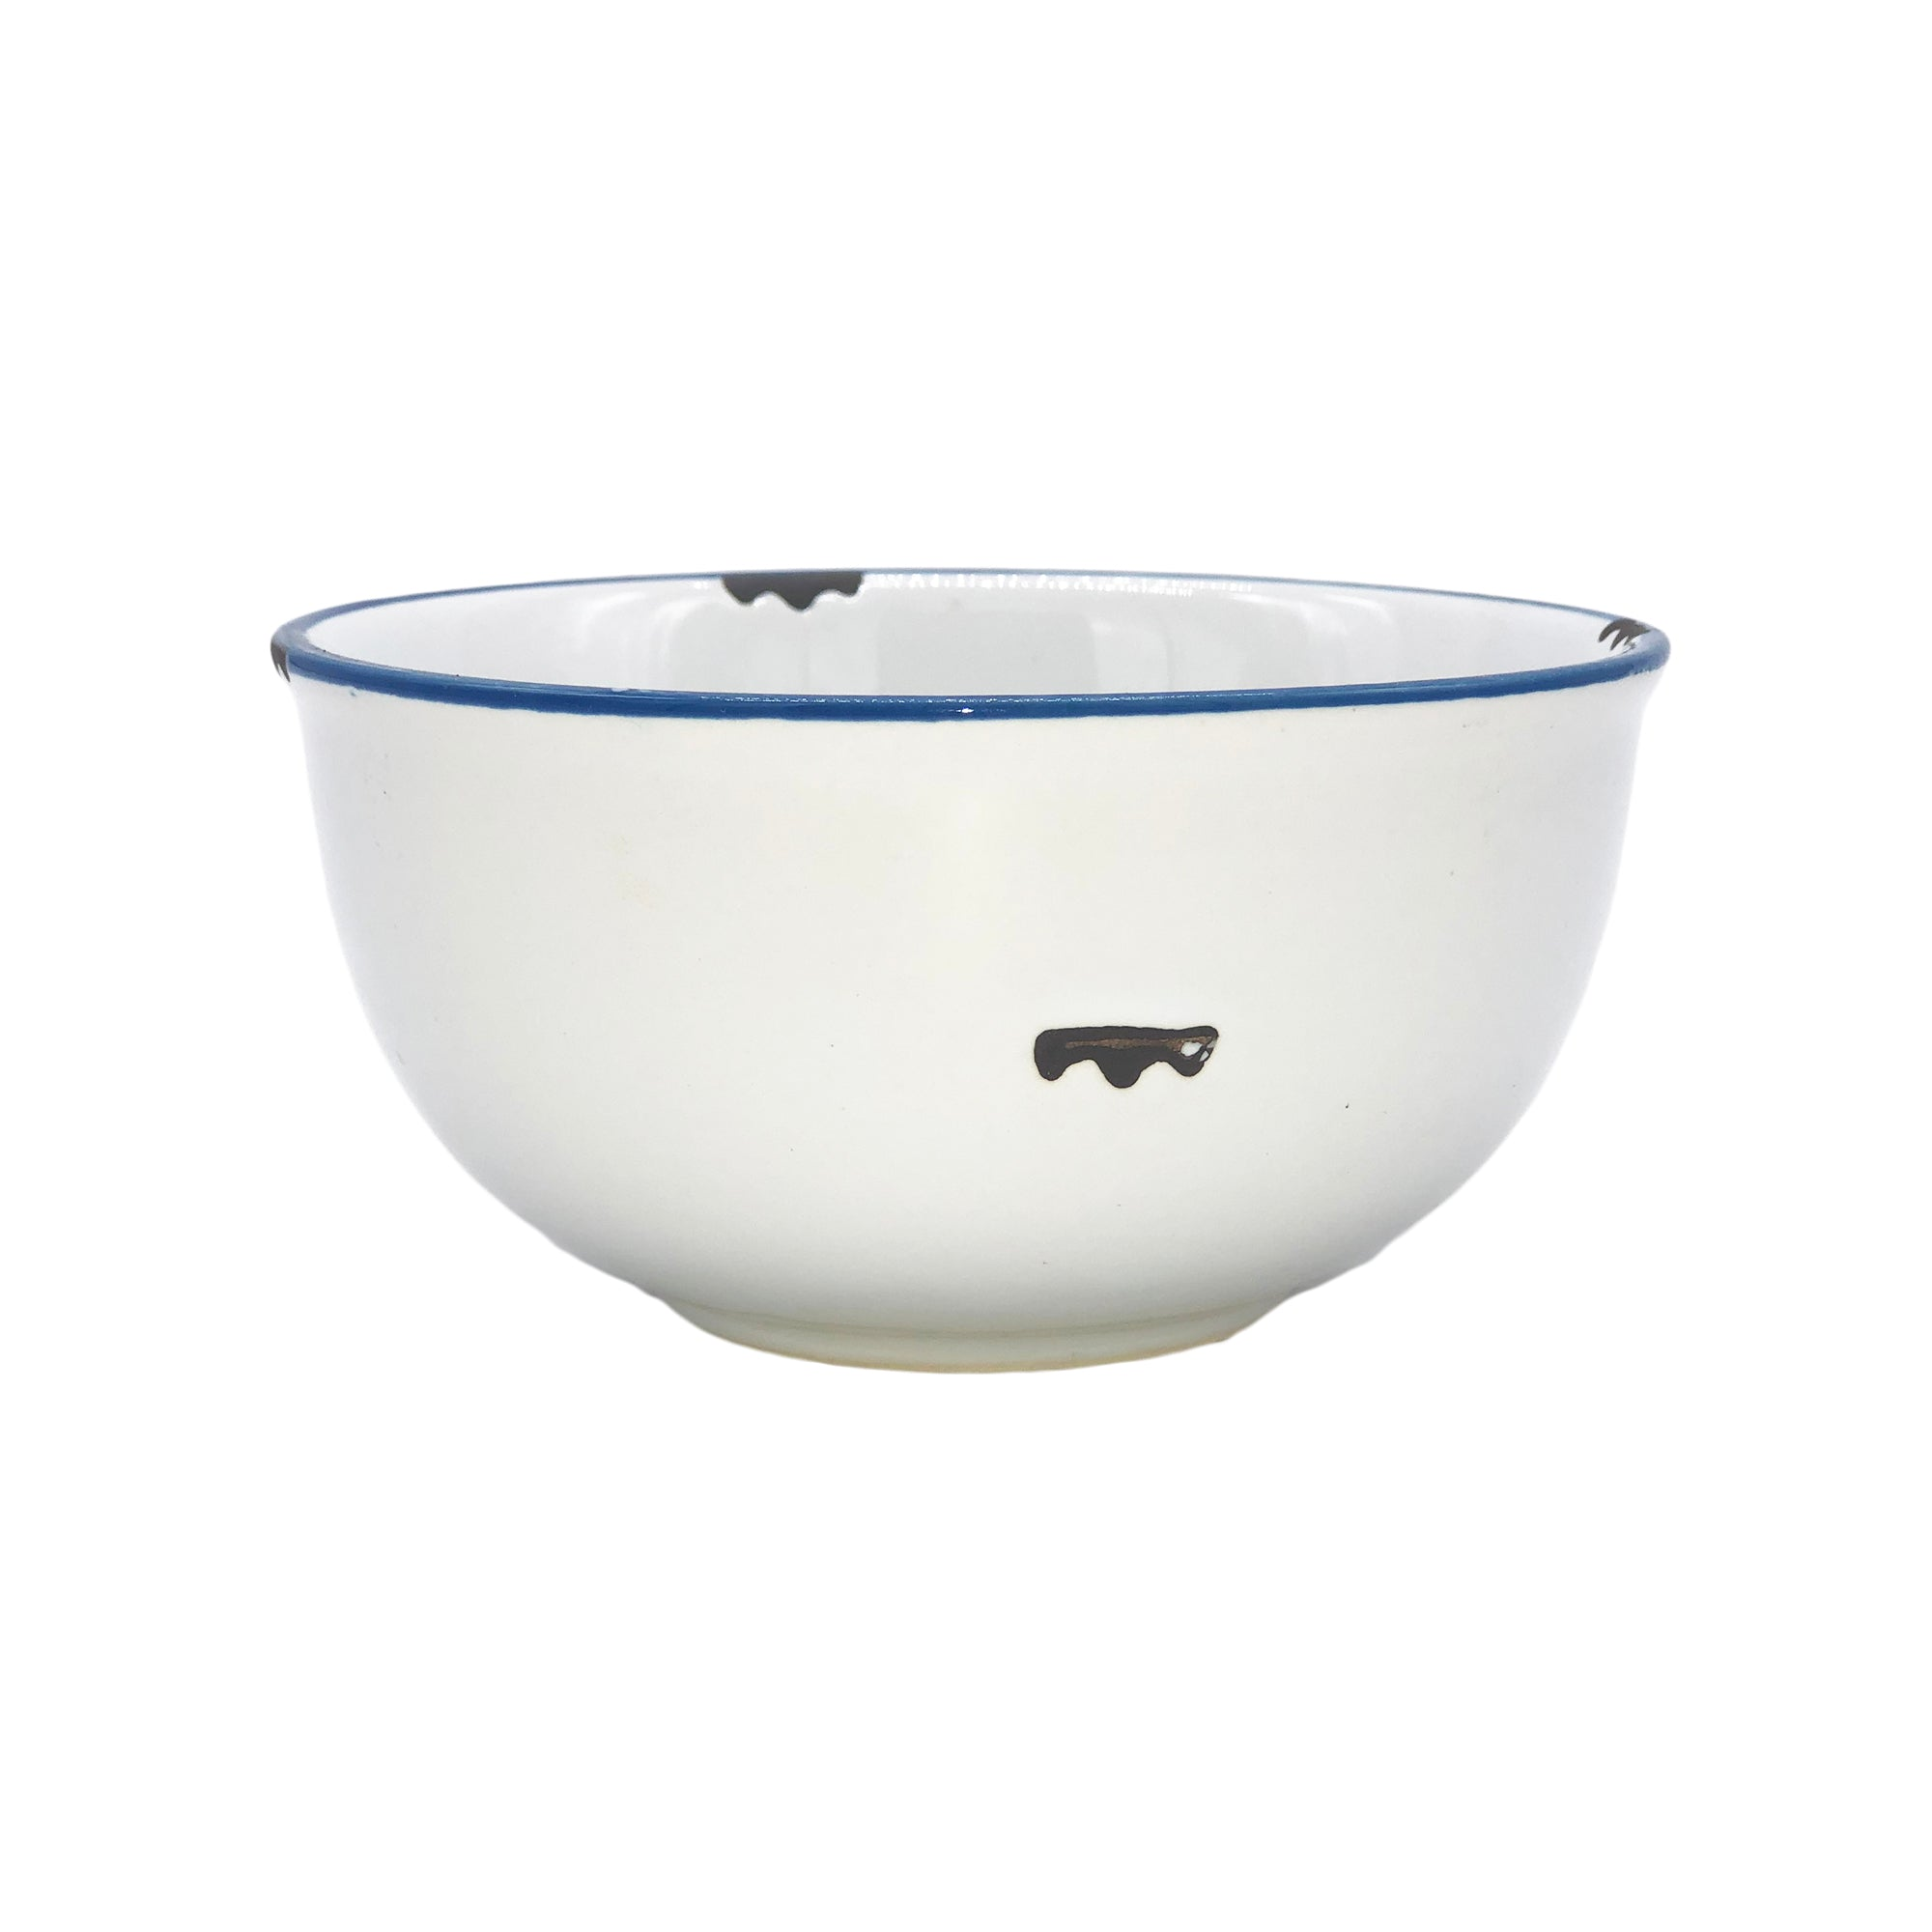 Tinware 8 oz. Small Bowl in White/Blue Rim - Set of 4